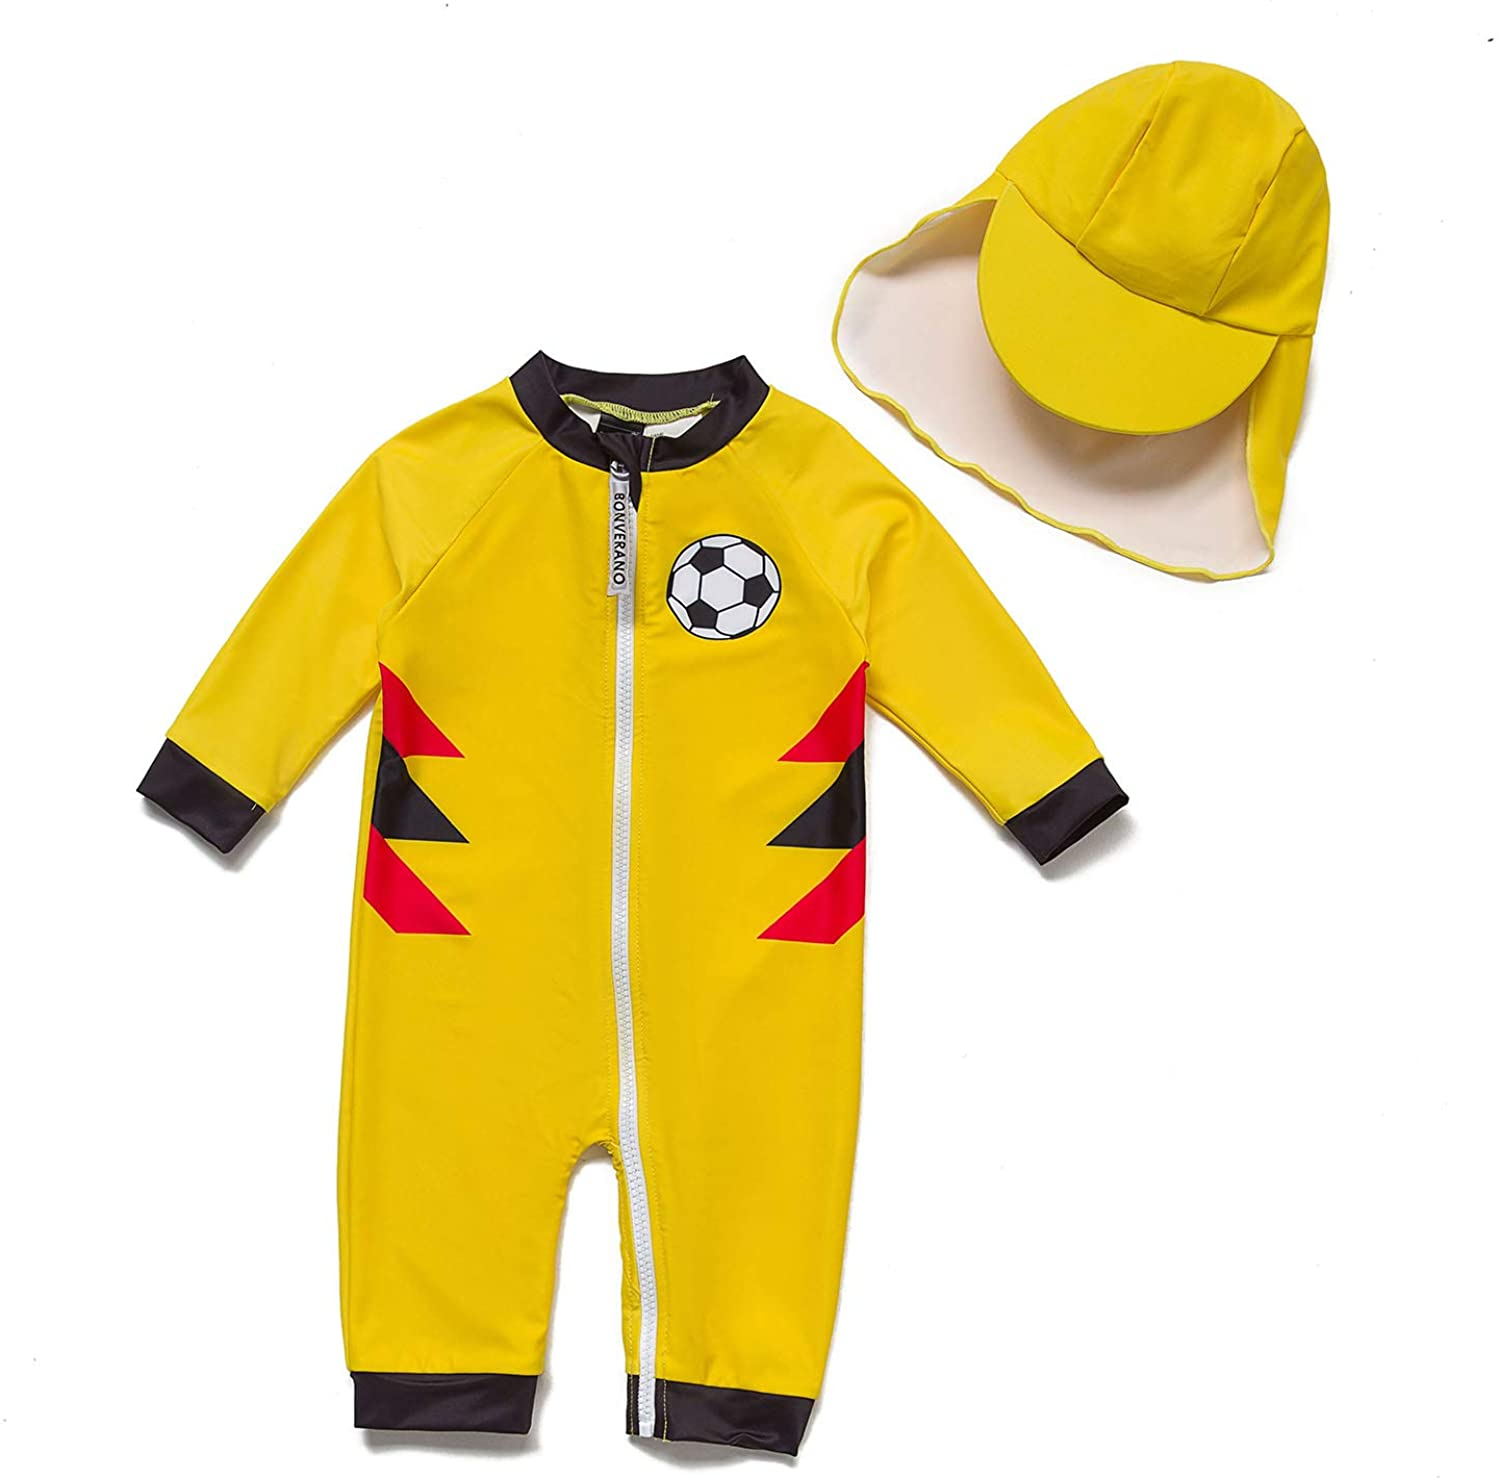 Baby Boys Sunsuits/Swimwear UPF 50+ Sun Protection One Piece Full-Length Zipper Swimsuits with Sun Cap.